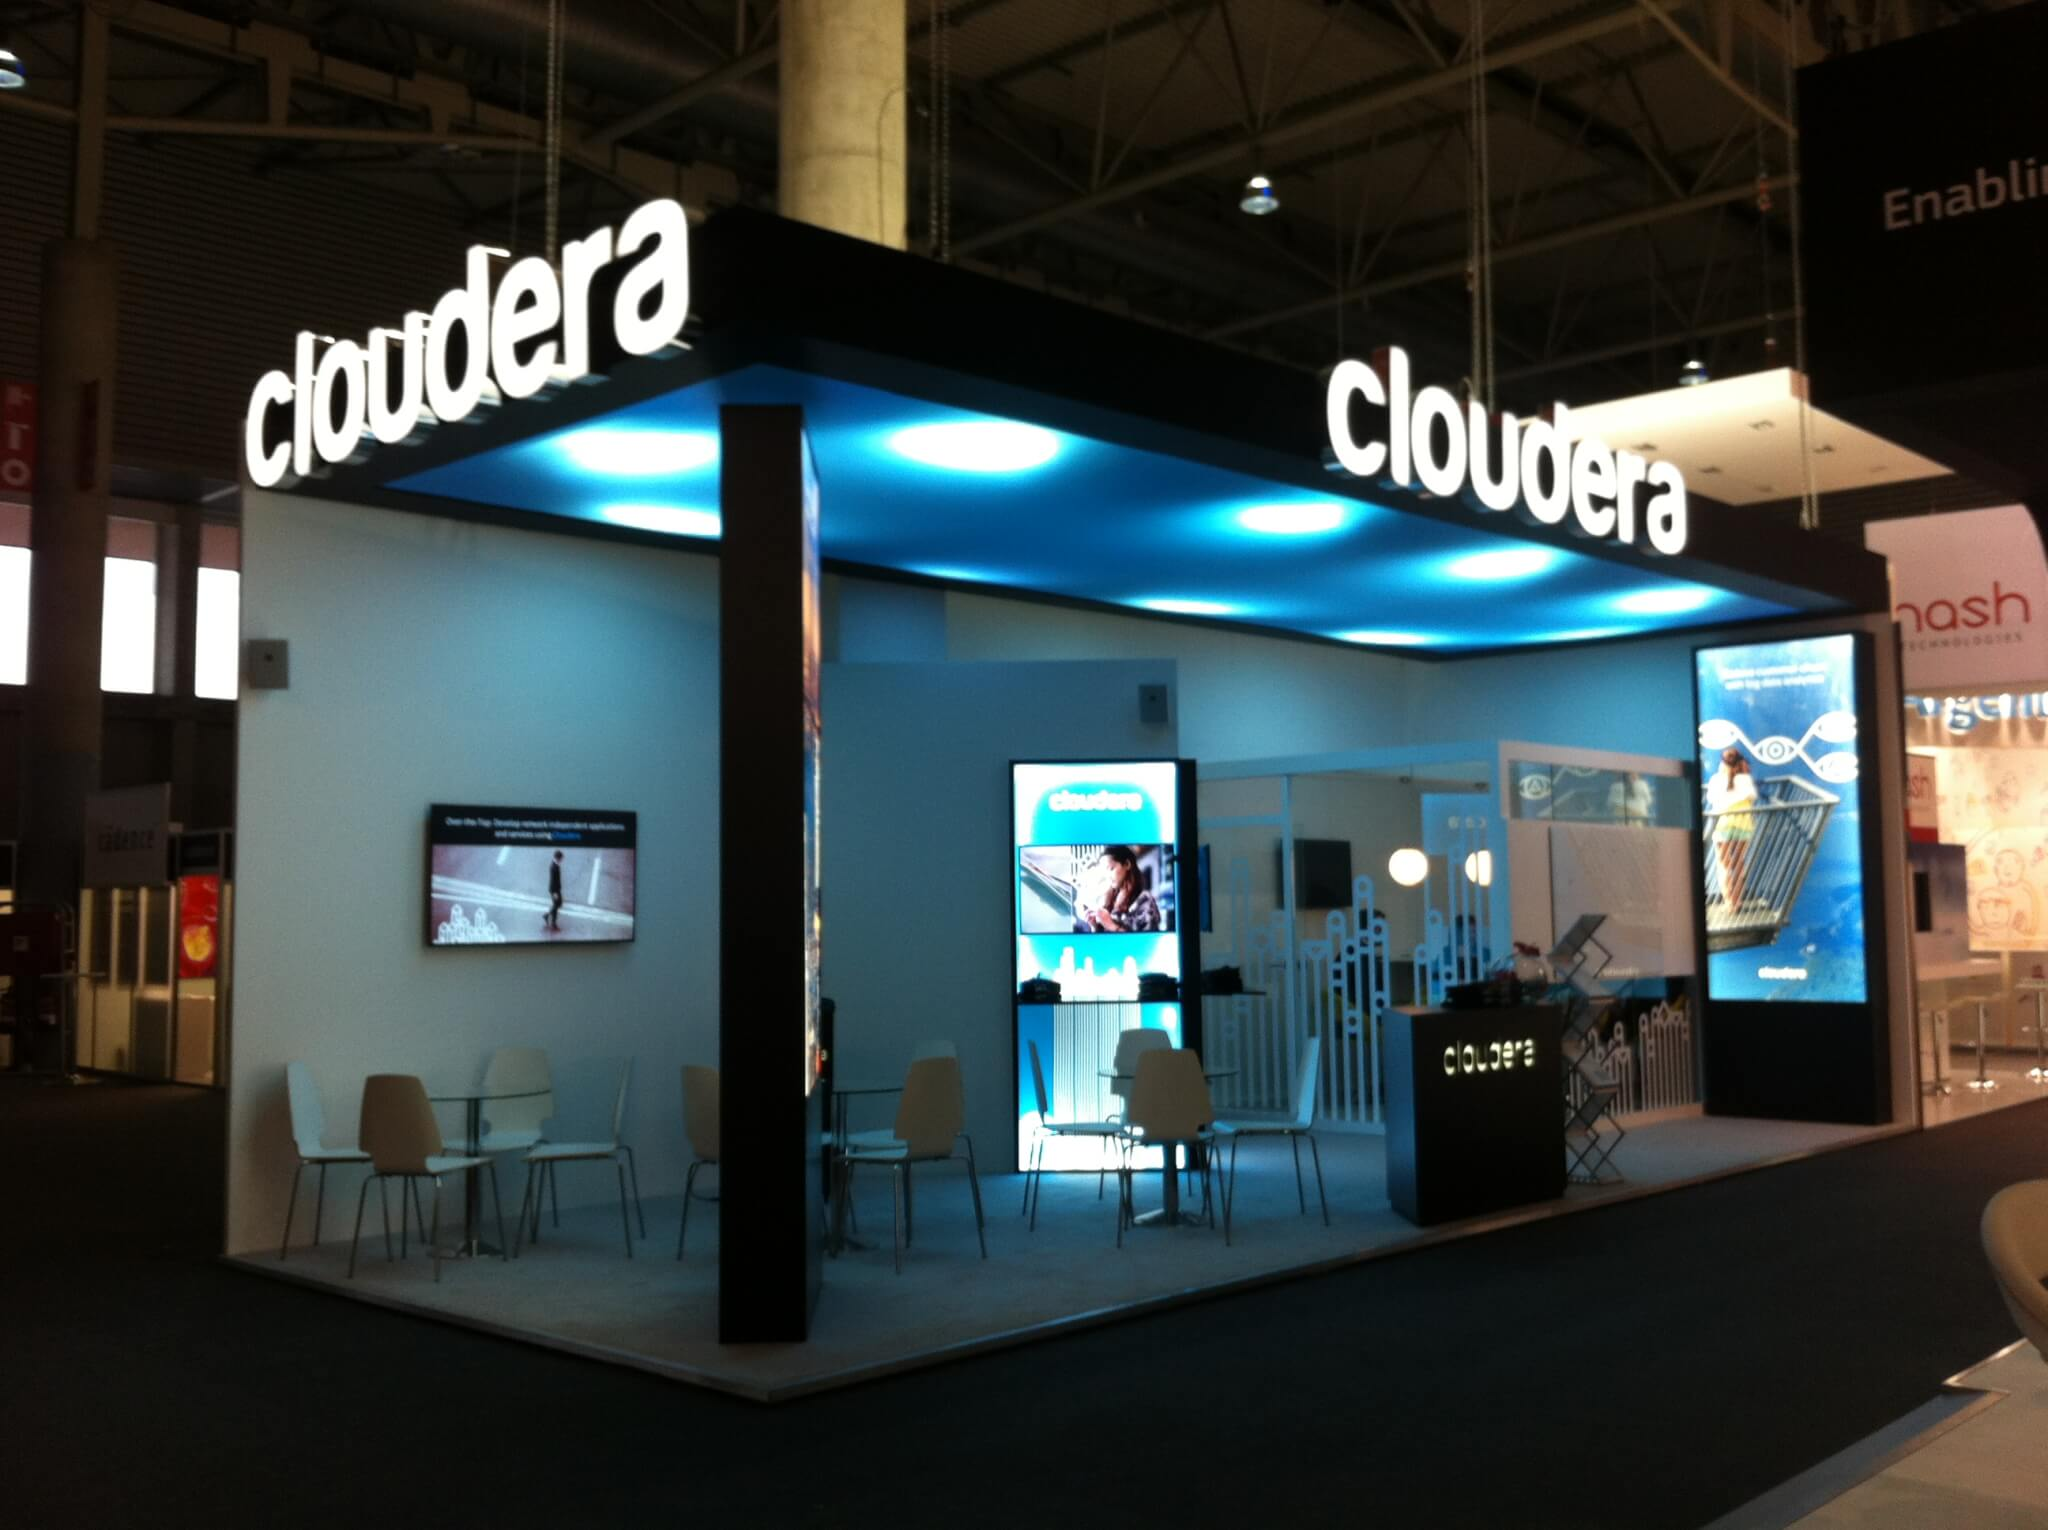 Cloudera starts trading at $17.80, up 19% from IPO price